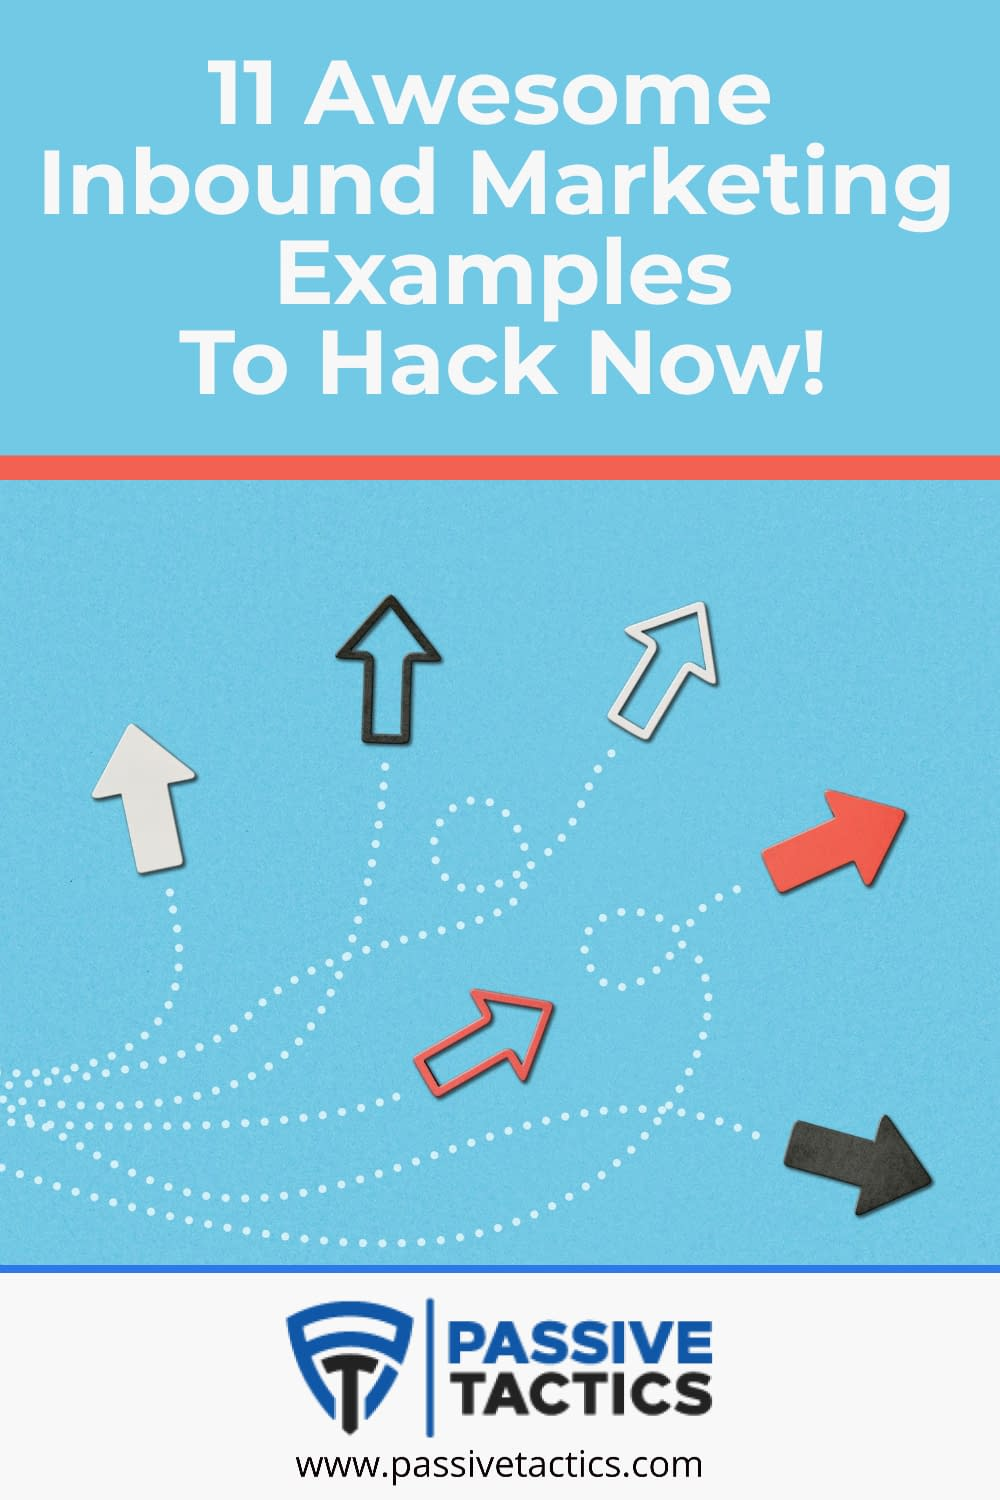 11 Awesome Inbound Marketing Examples To Hack Now!